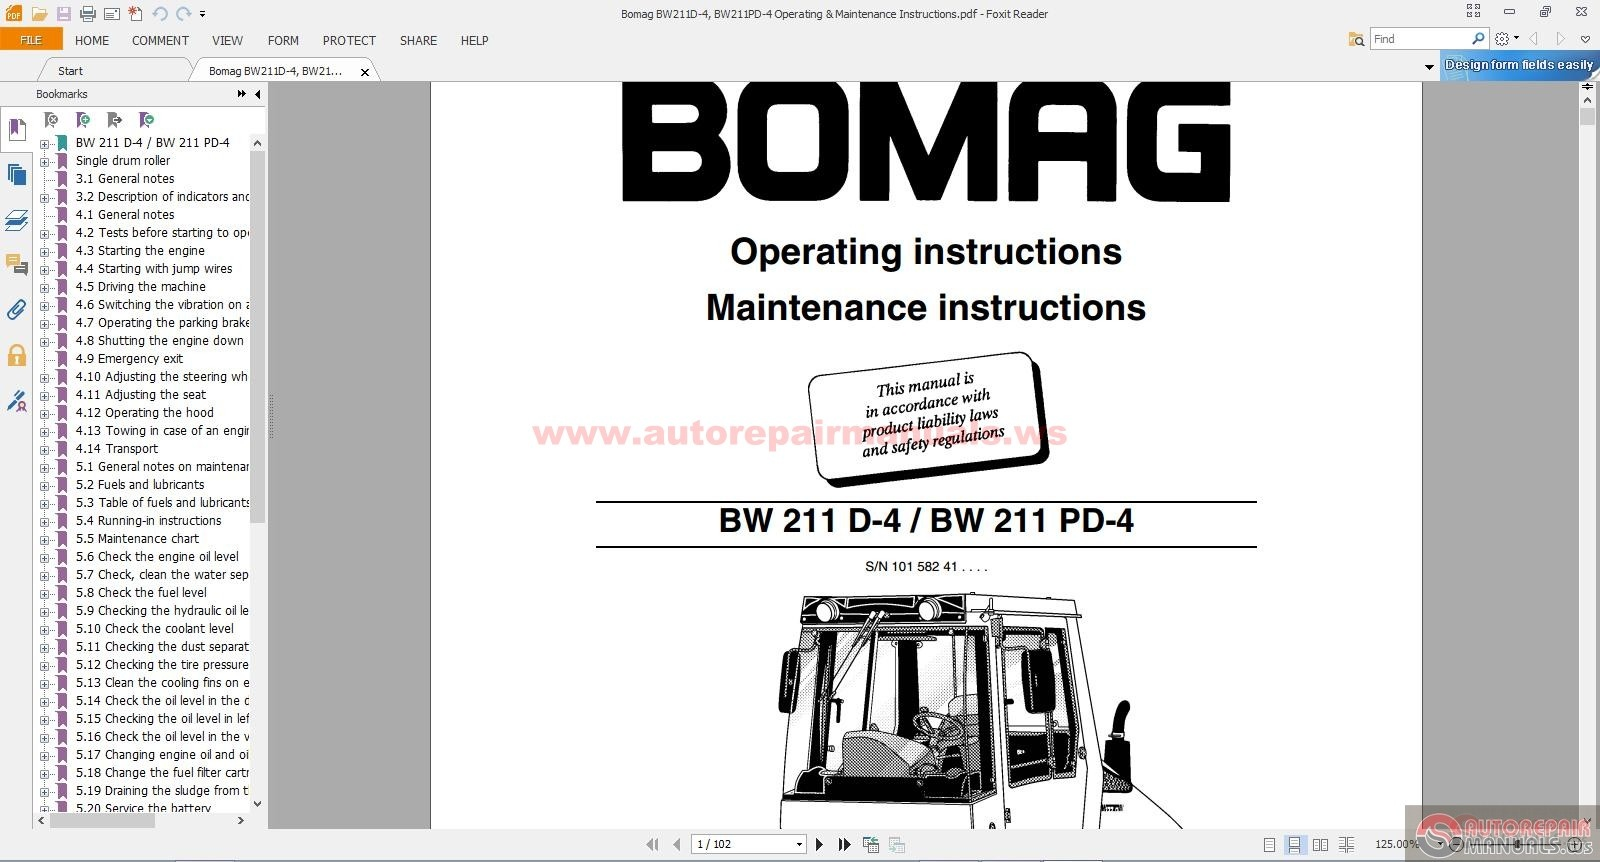 Bomag_BW211D 4_BW211PD 4_Operating_Maintenance_Instructions bomag bw211d 4, bw211pd 4 operating & maintenance instructions bomag bw-90 wiring diagram at bayanpartner.co